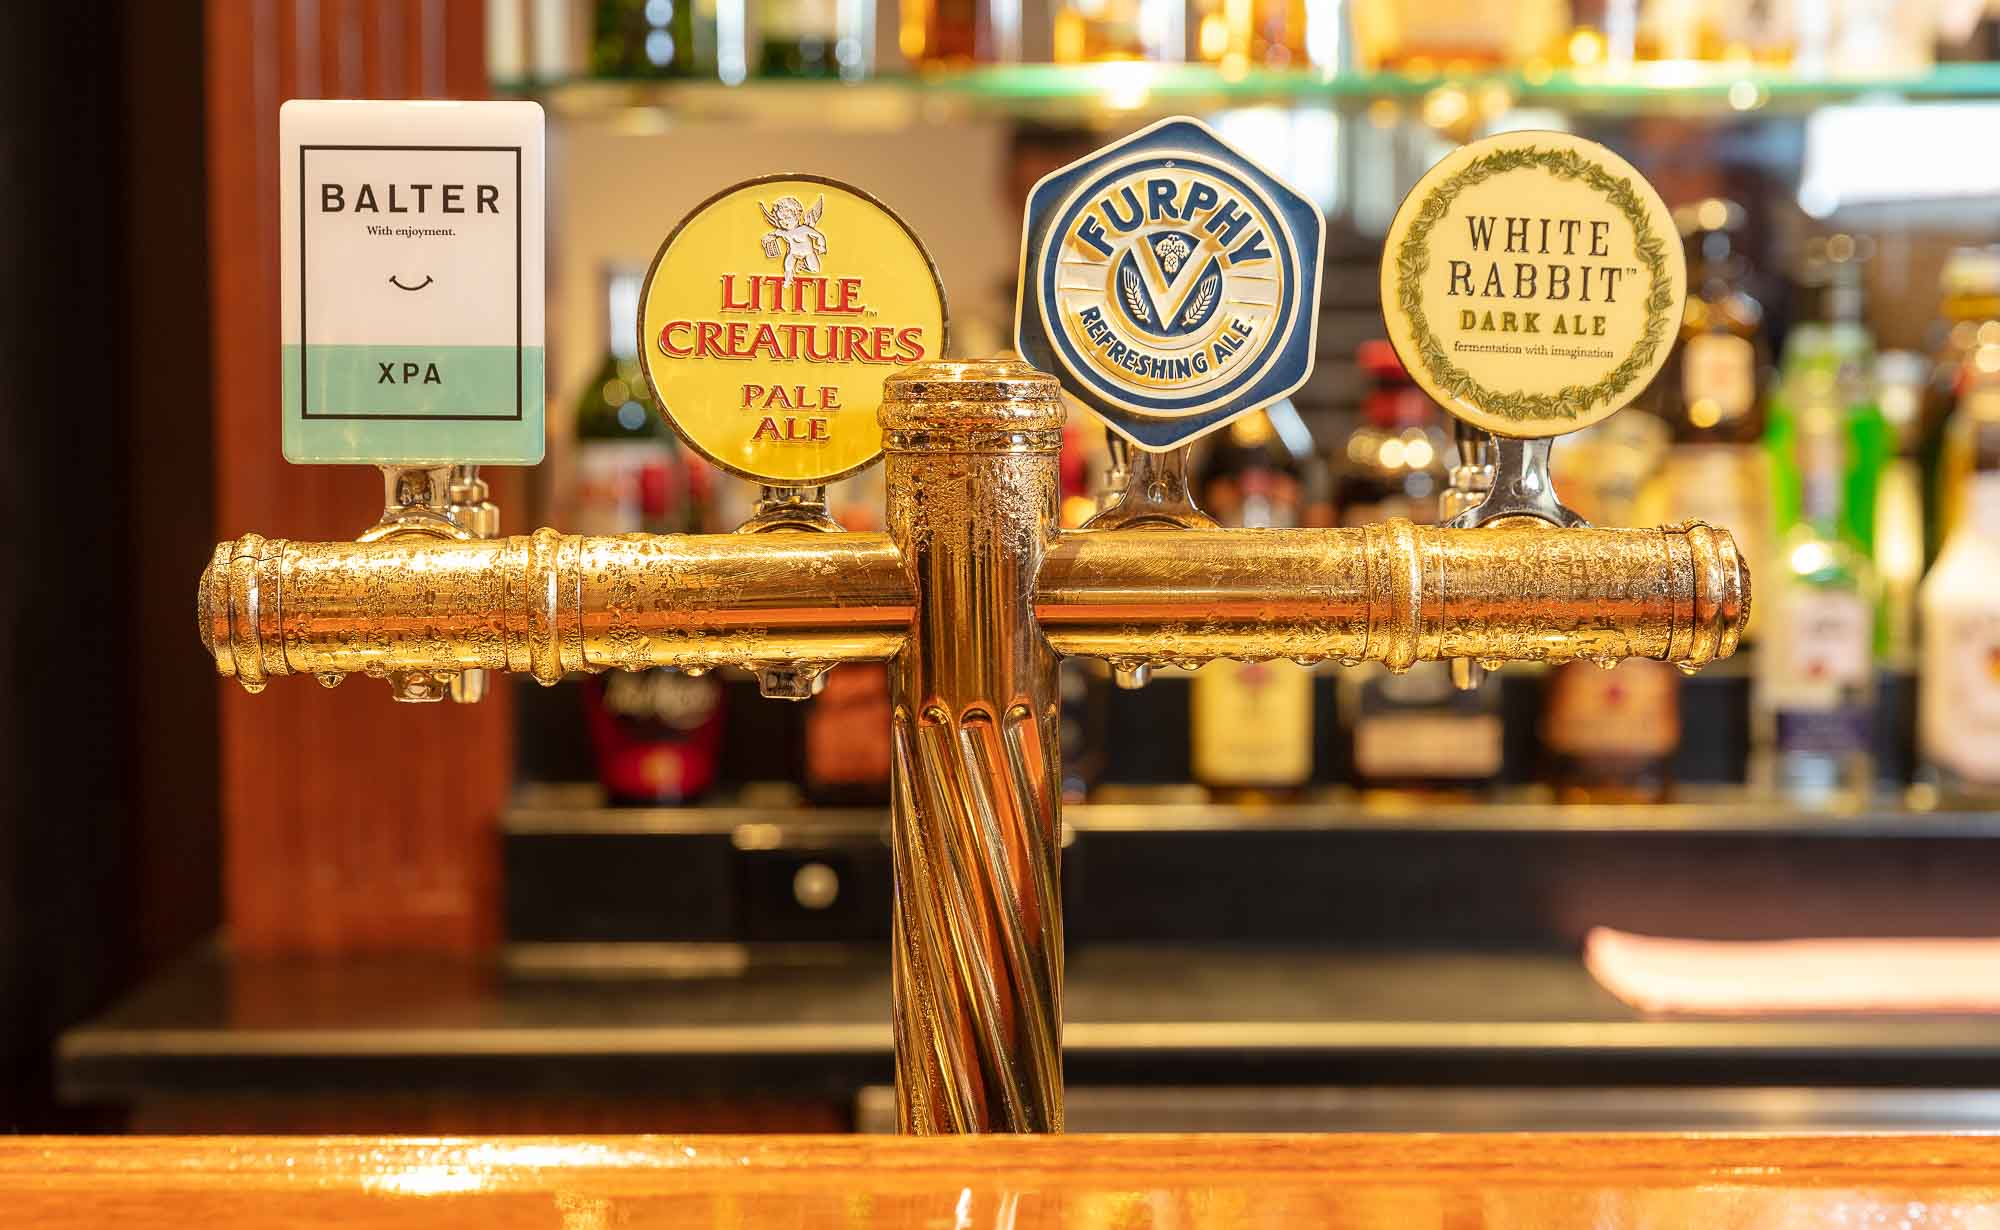 Commercial Bar photography sample - Beer taps2